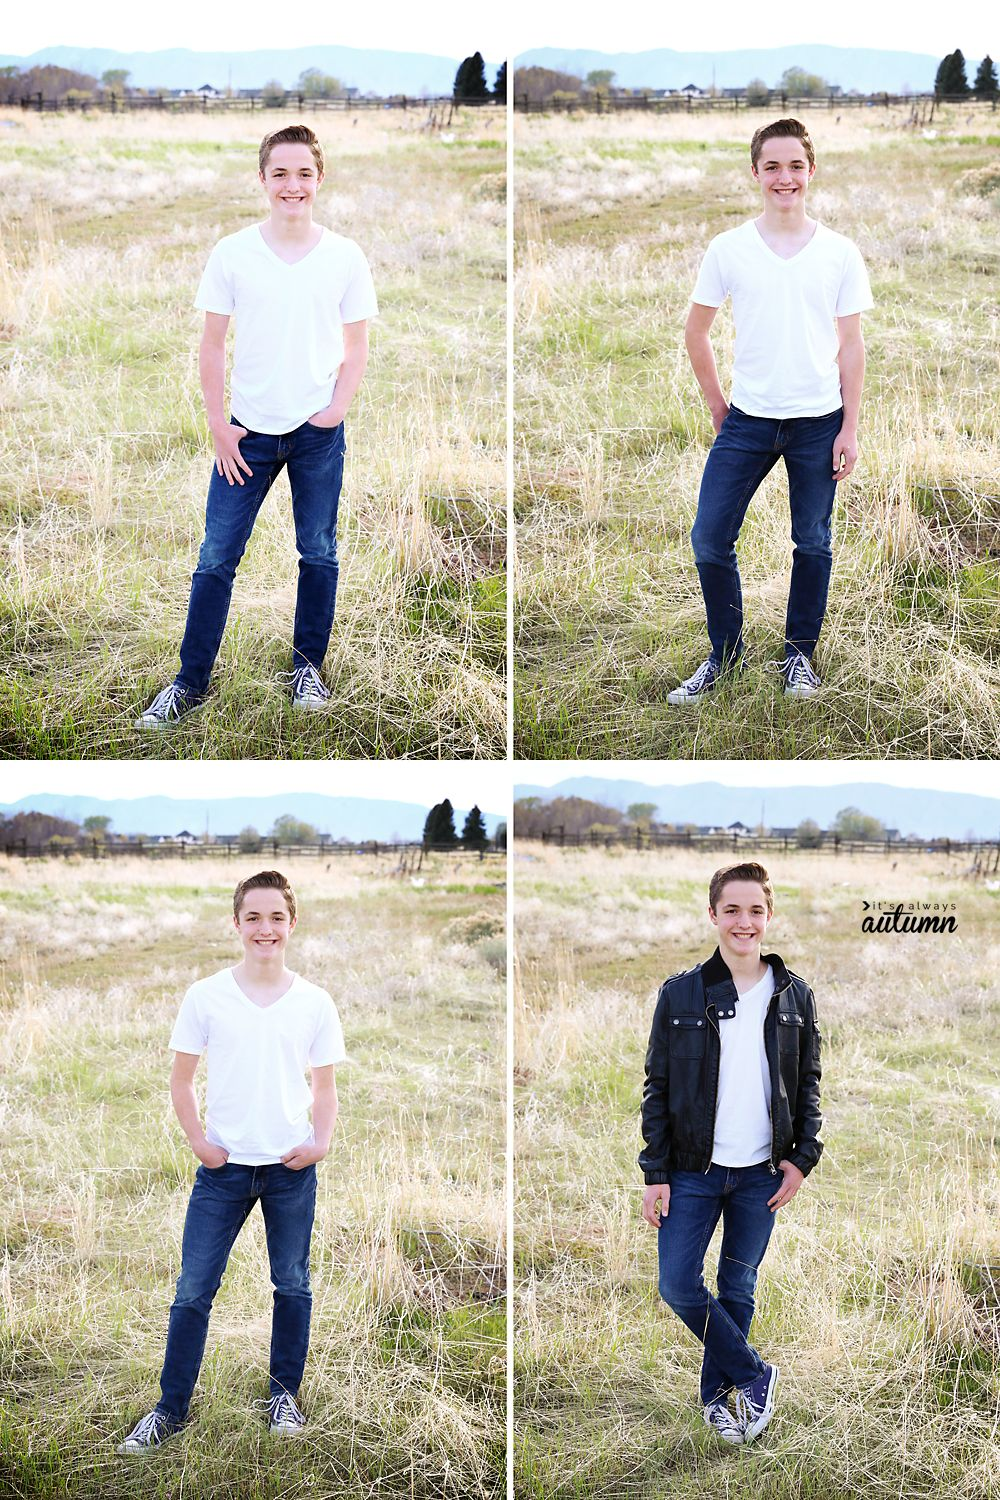 10 Easy Photo Poses For Boys To Help You Take Great Pictures Boy Poses Photo Poses For Boy Boy Photography Poses